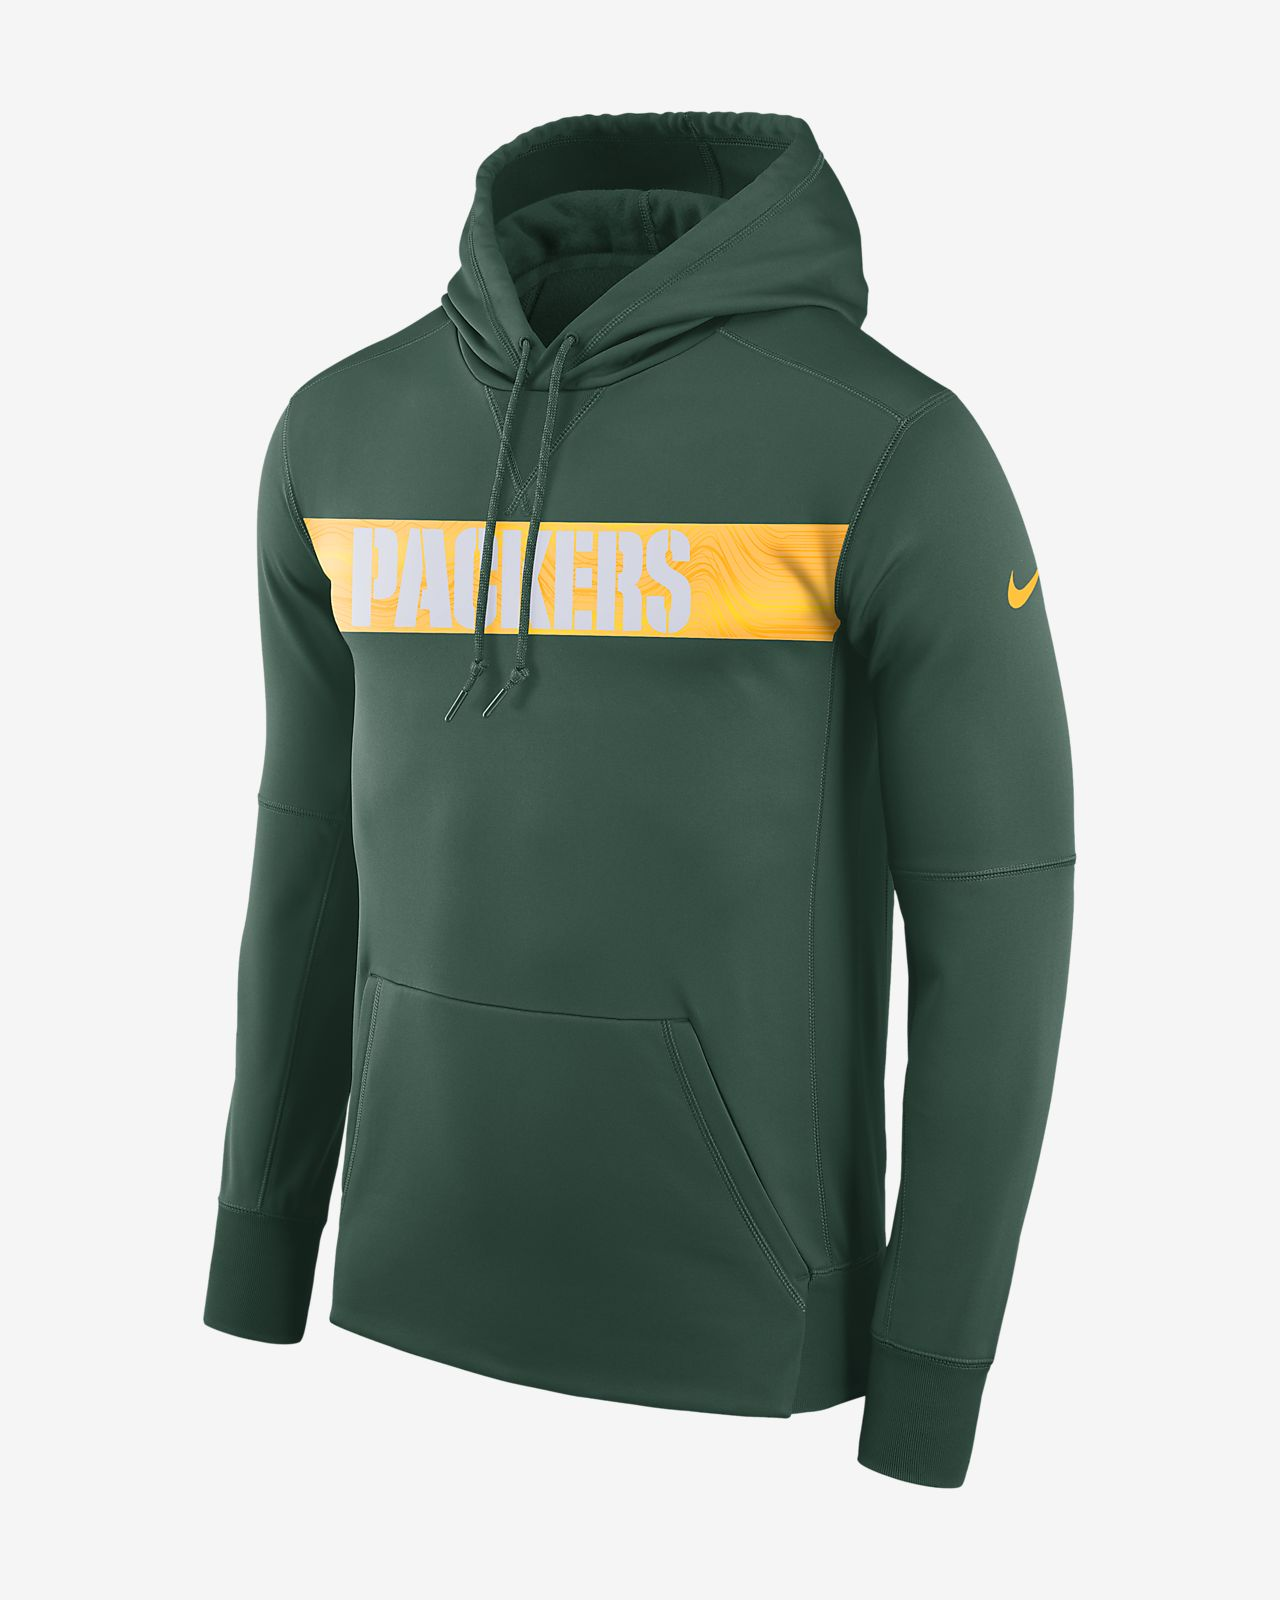 Męska bluza z kapturem Nike Dri-FIT Therma (NFL Packers)